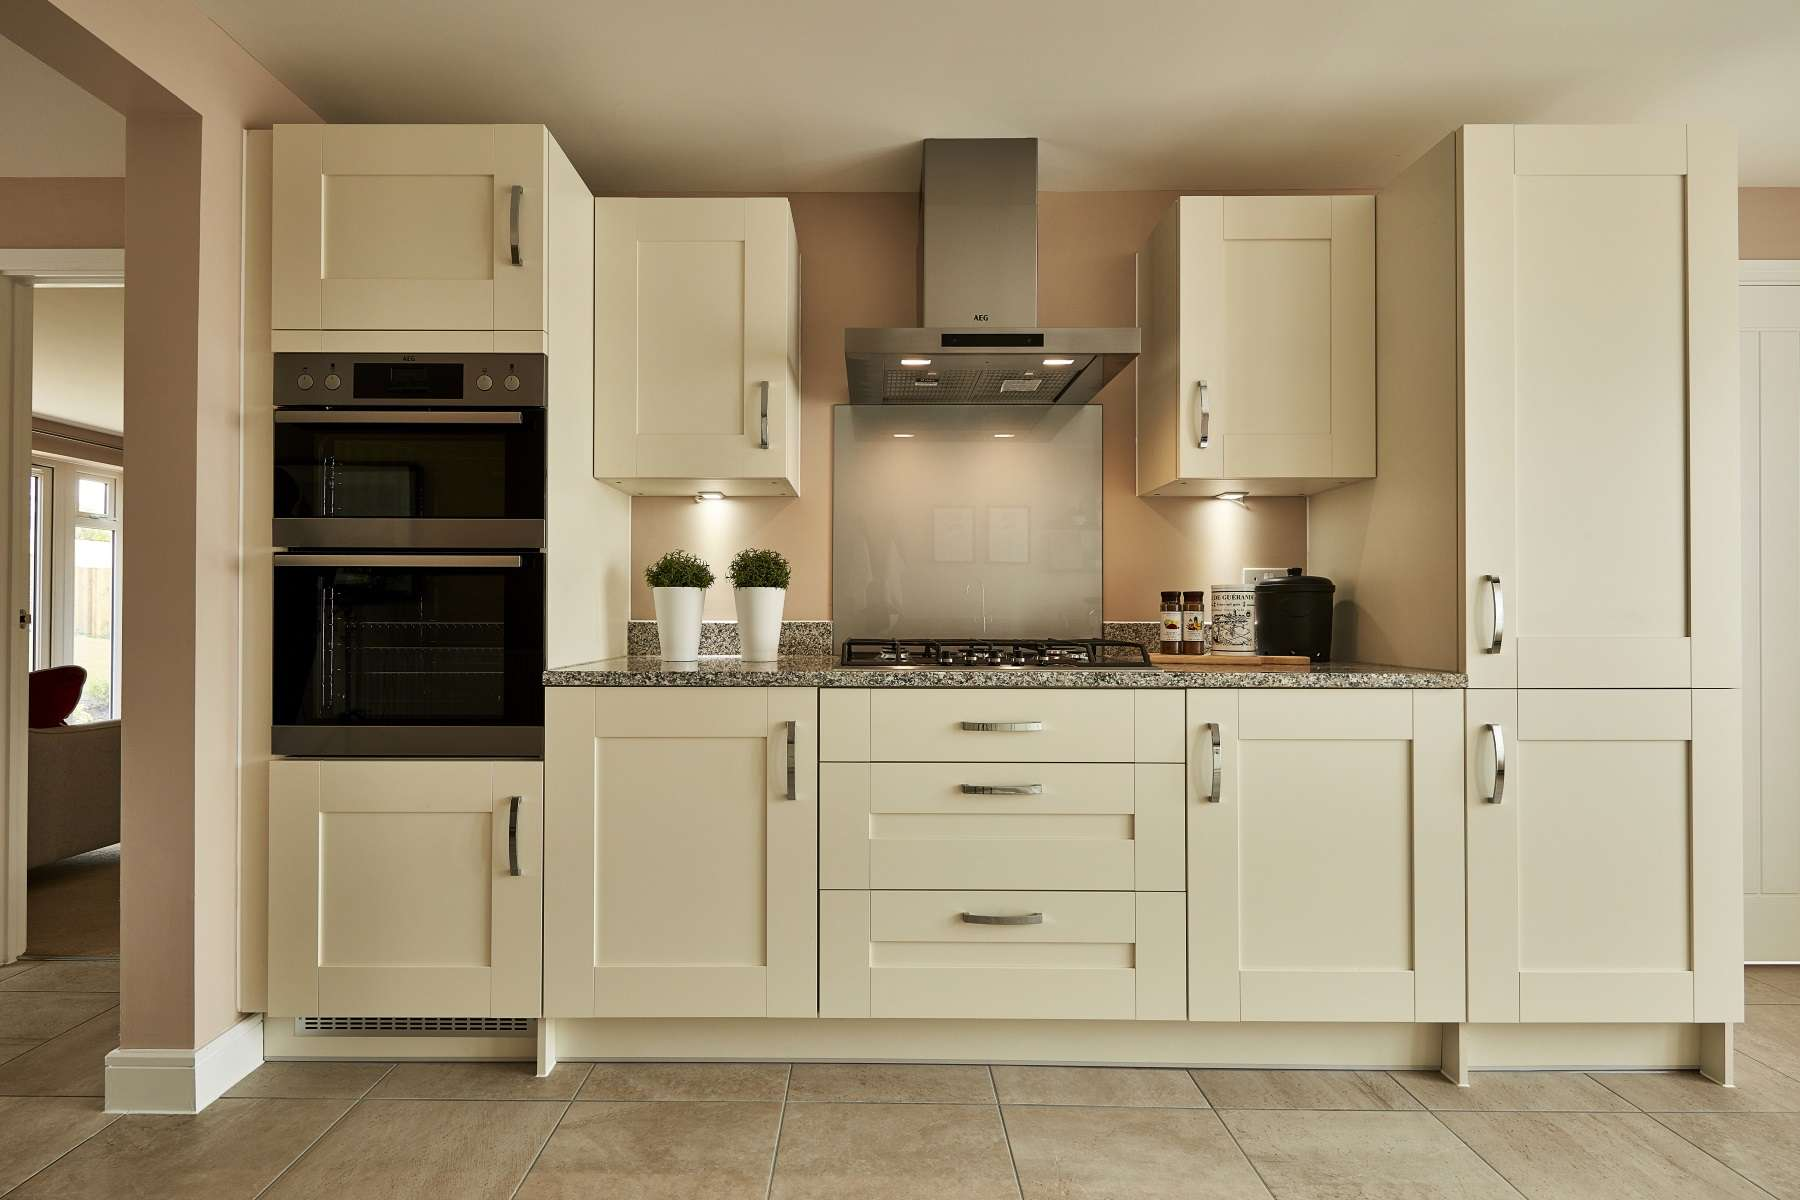 TW Exeter - Mayfield Gardens - Marford example kitchen 3